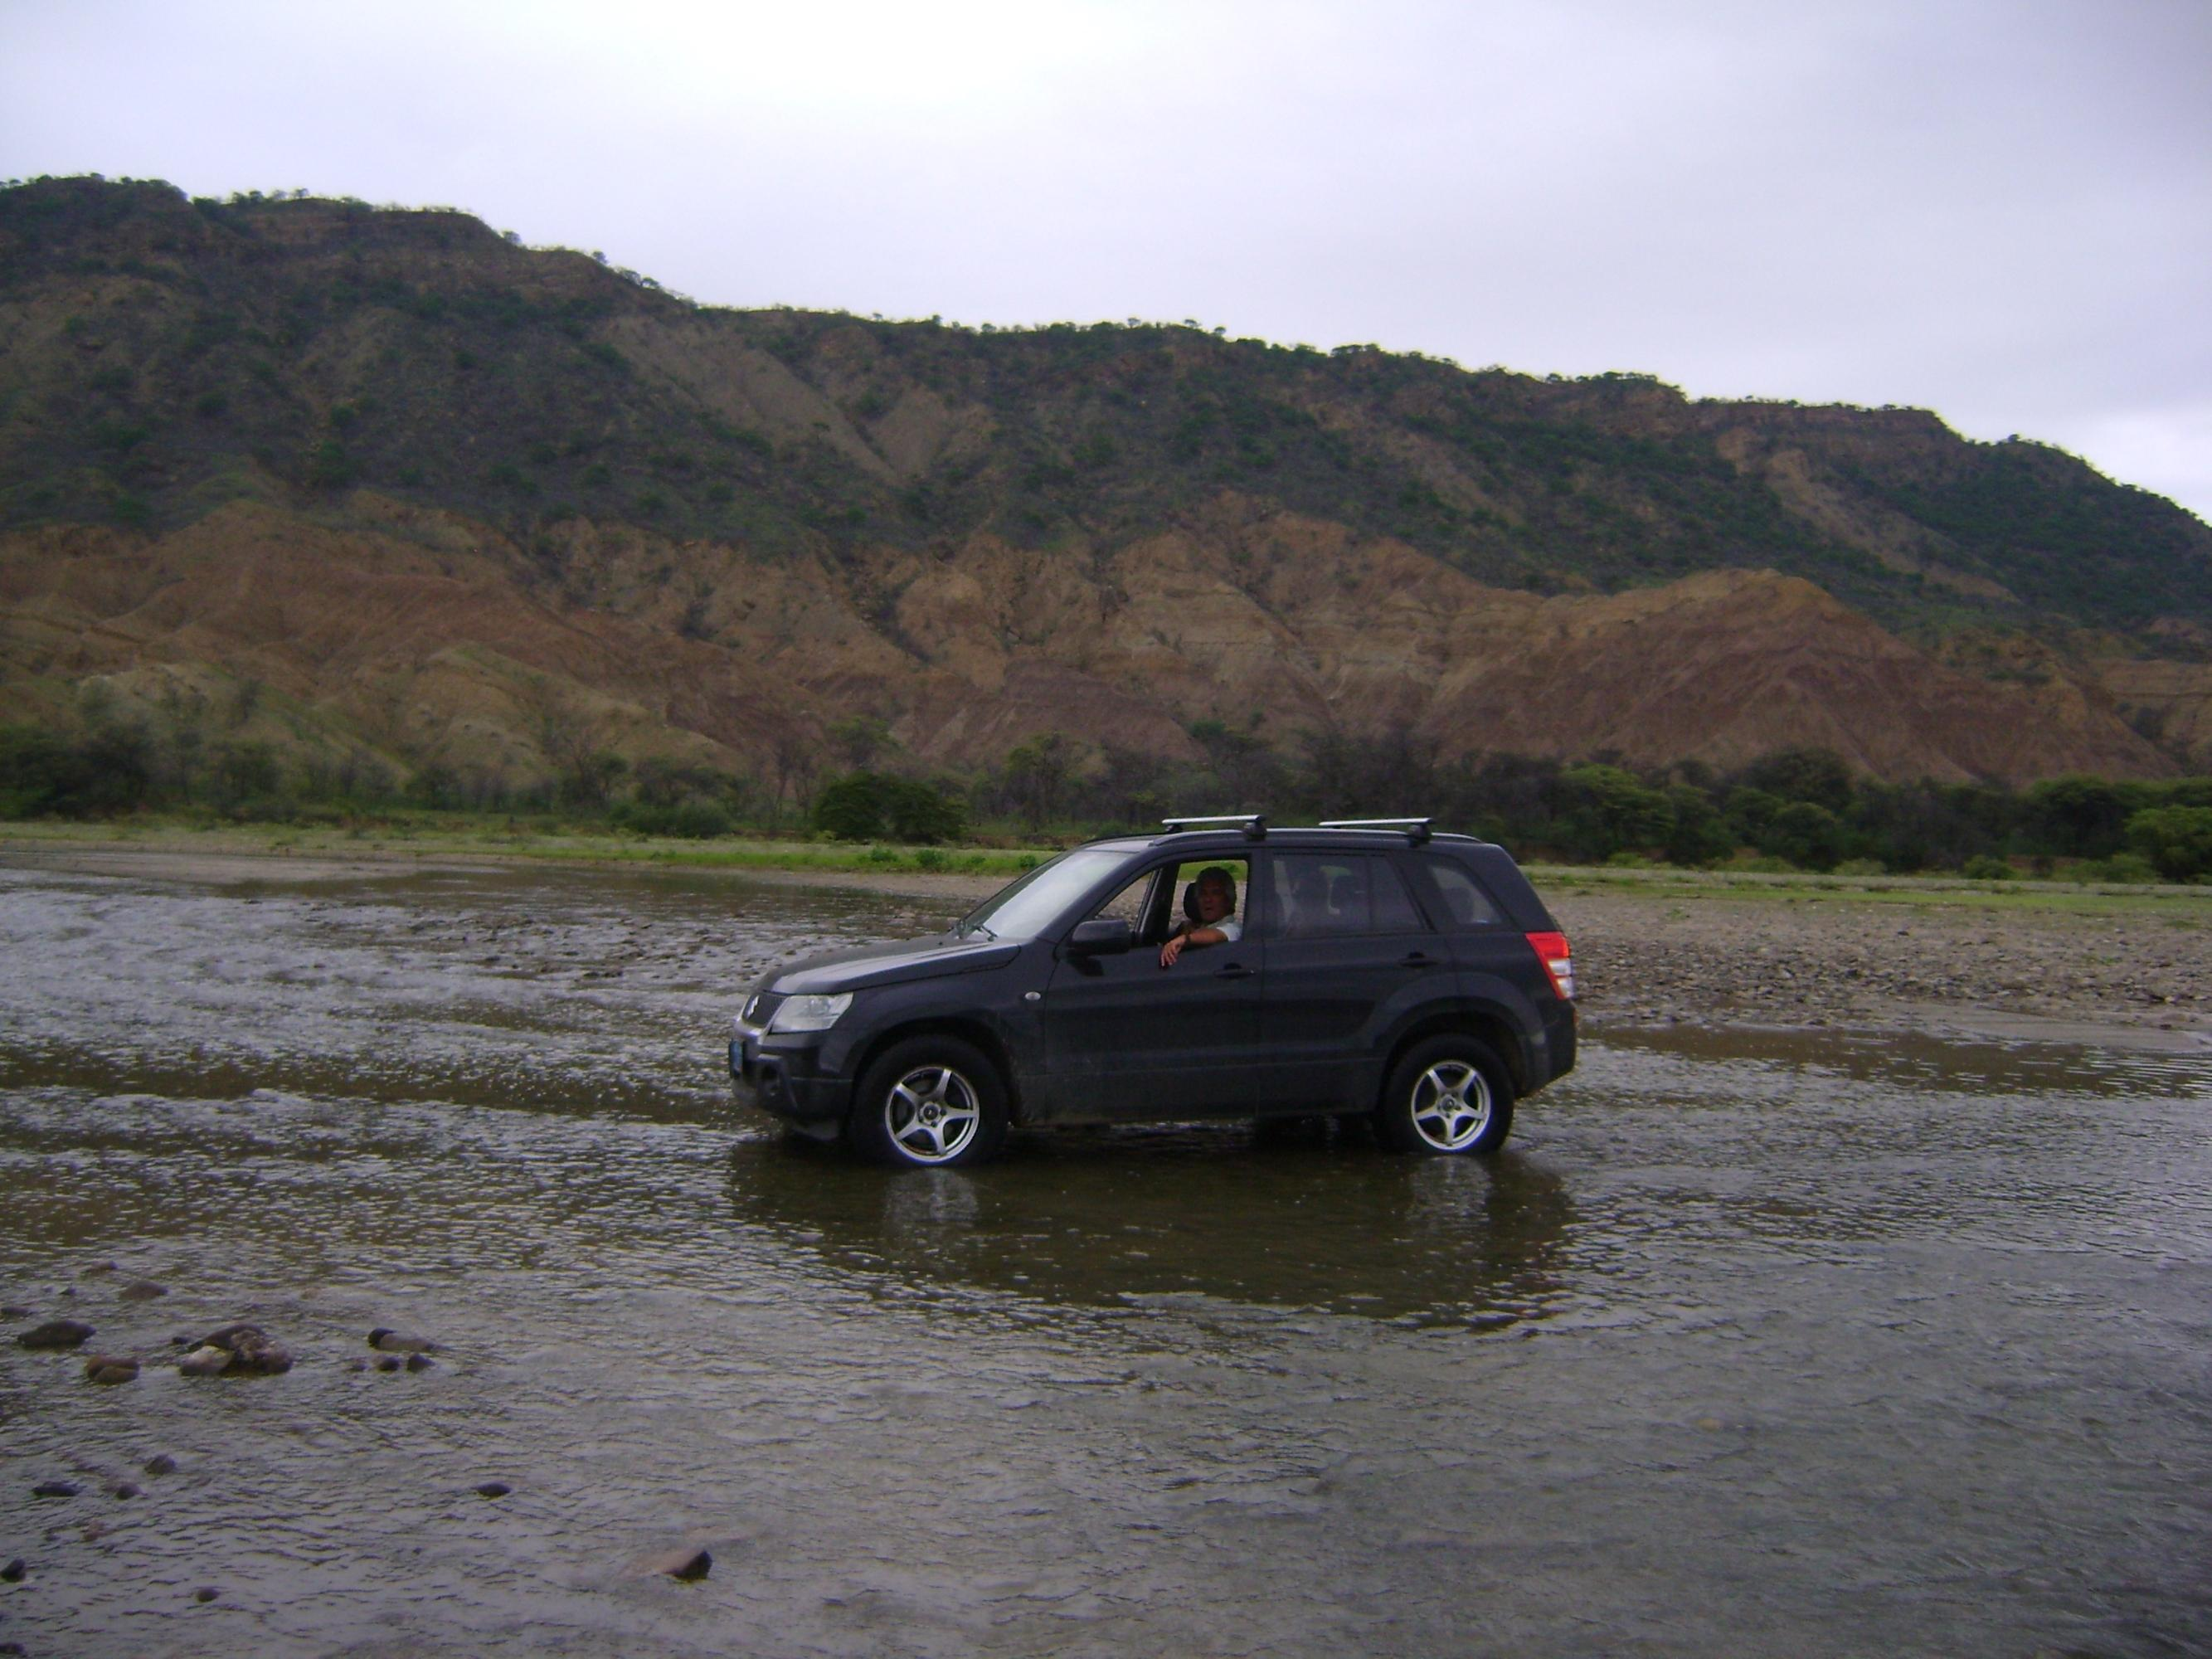 Enroute through the riverbed